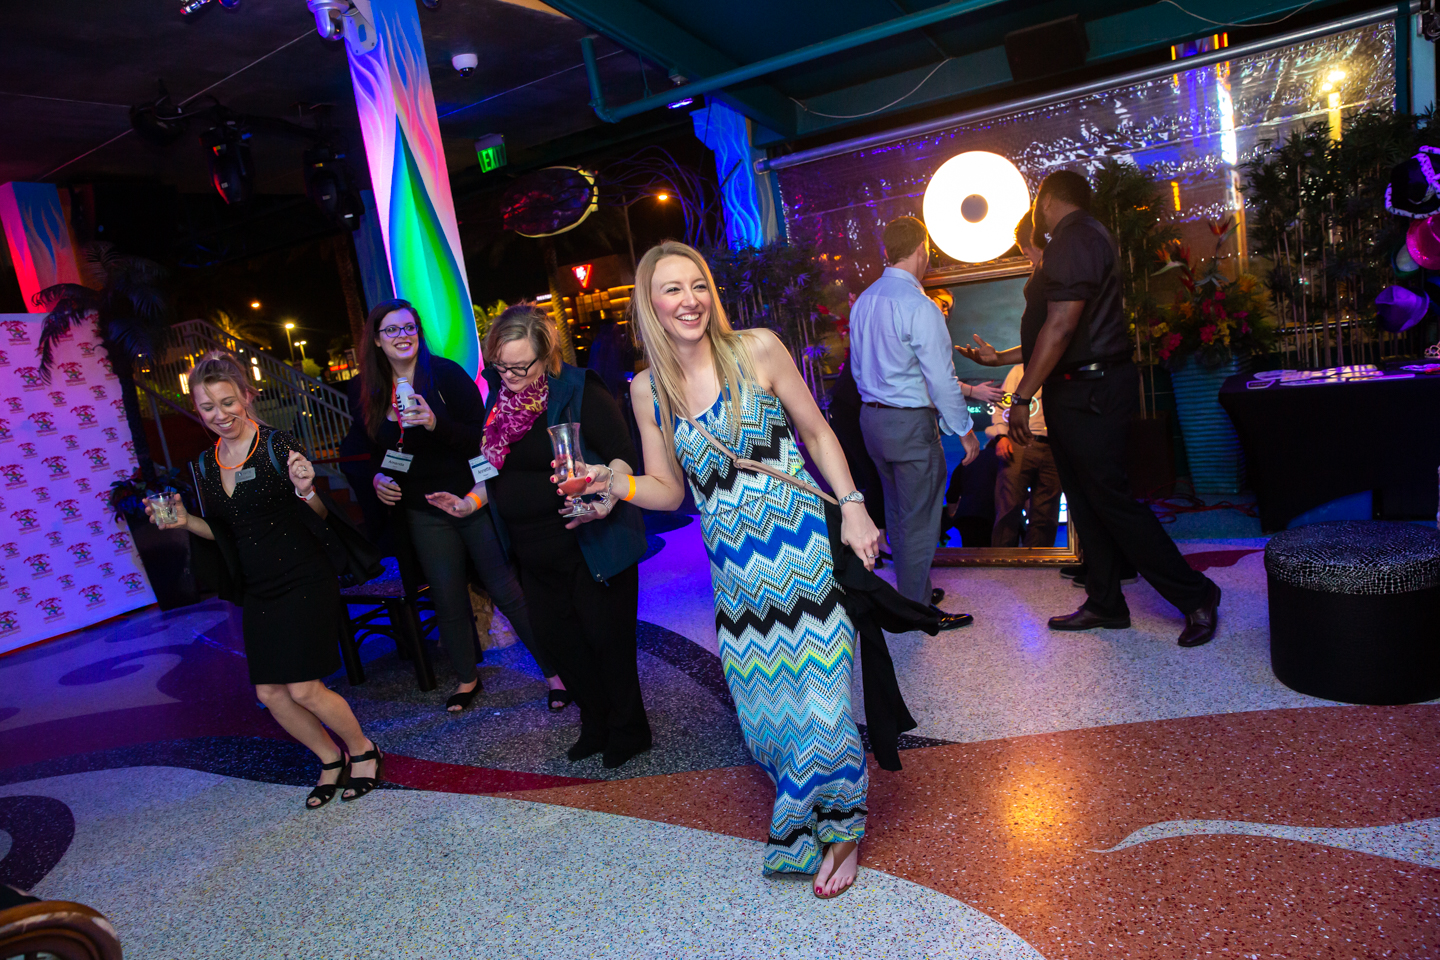 AAPPR-Conference-Expo-Professional-Event-Photography-Photographer-Orlando-dancing-56.jpg